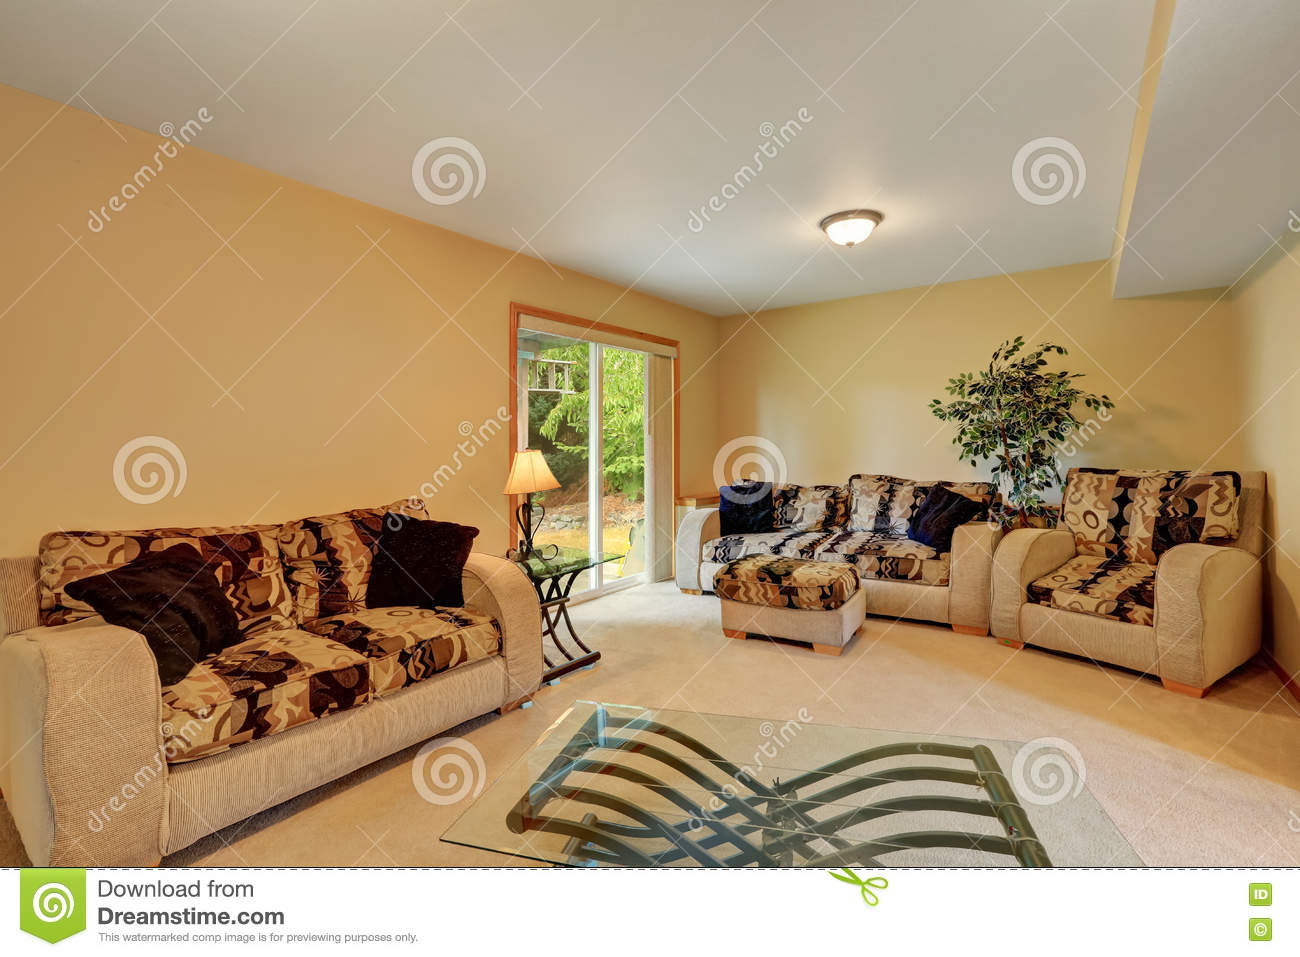 comfortable sofas for family room flexsteel reclining fabric cozy in warm peach and beige tones stock image sofa set with colorful cushions modern glass coffee table doors to backyard northwest usa